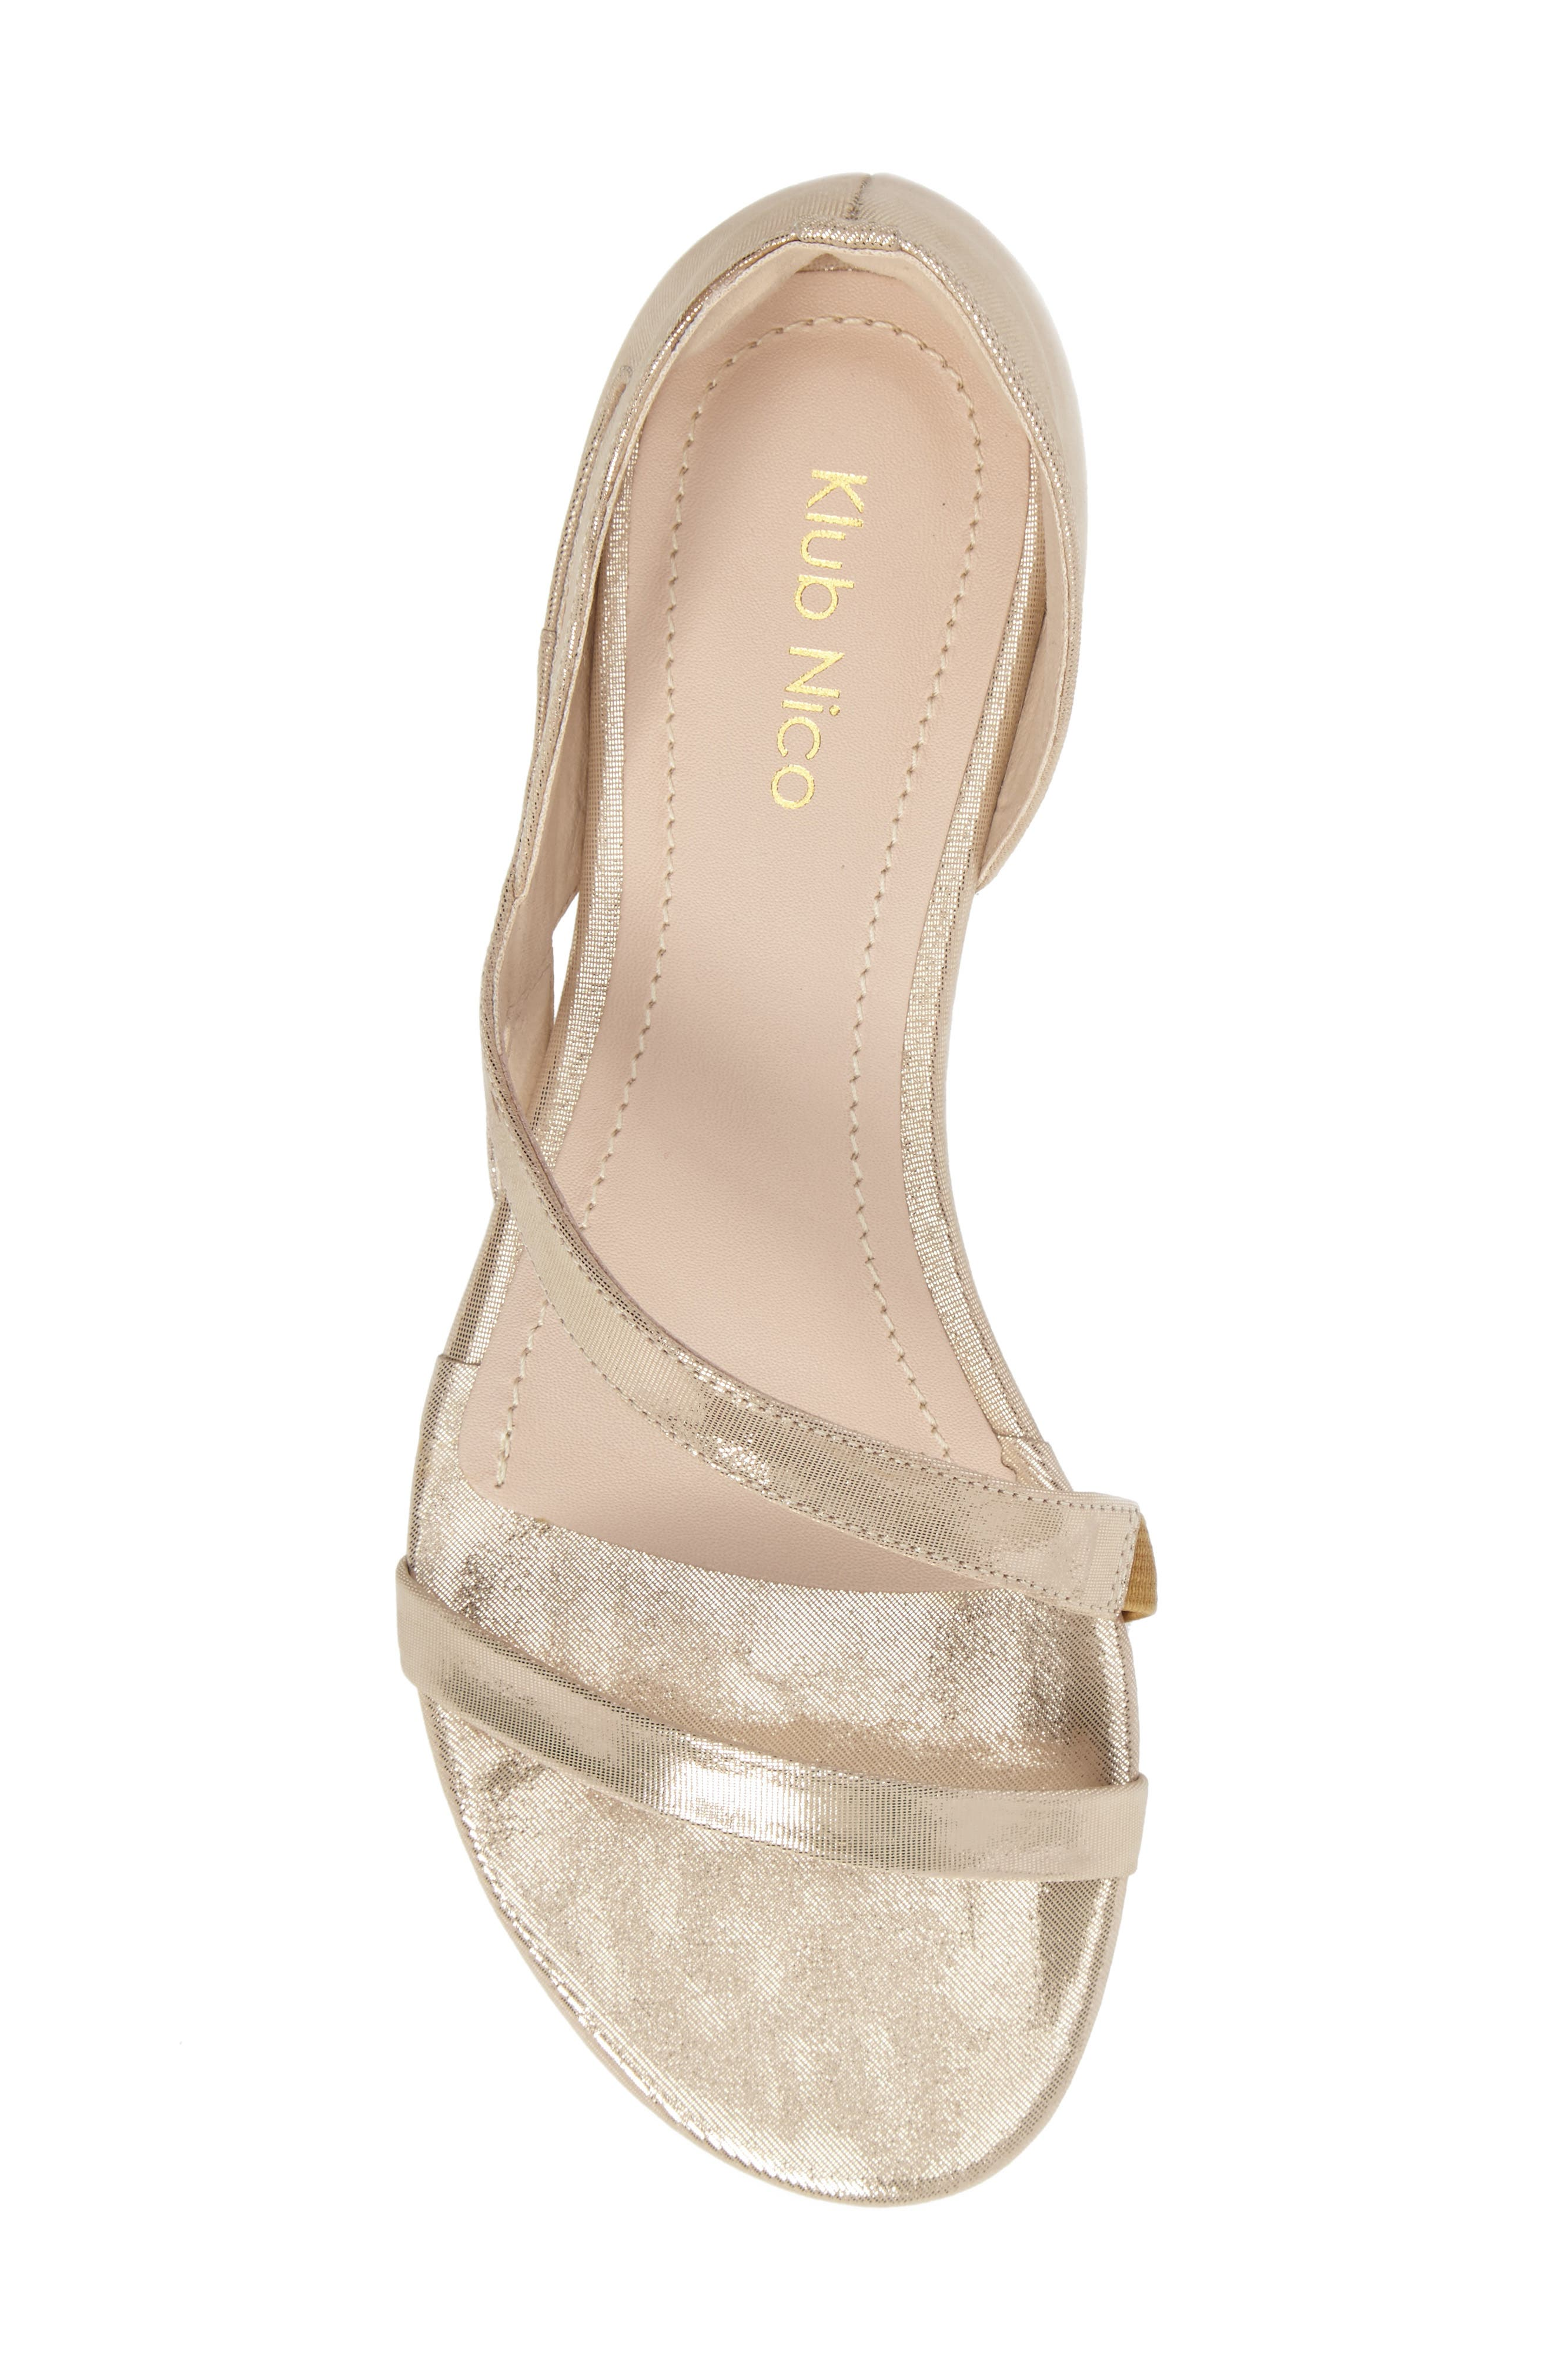 KLUB NICO, Jeanne Sandal, Alternate thumbnail 5, color, CHAMPAGNE LEATHER